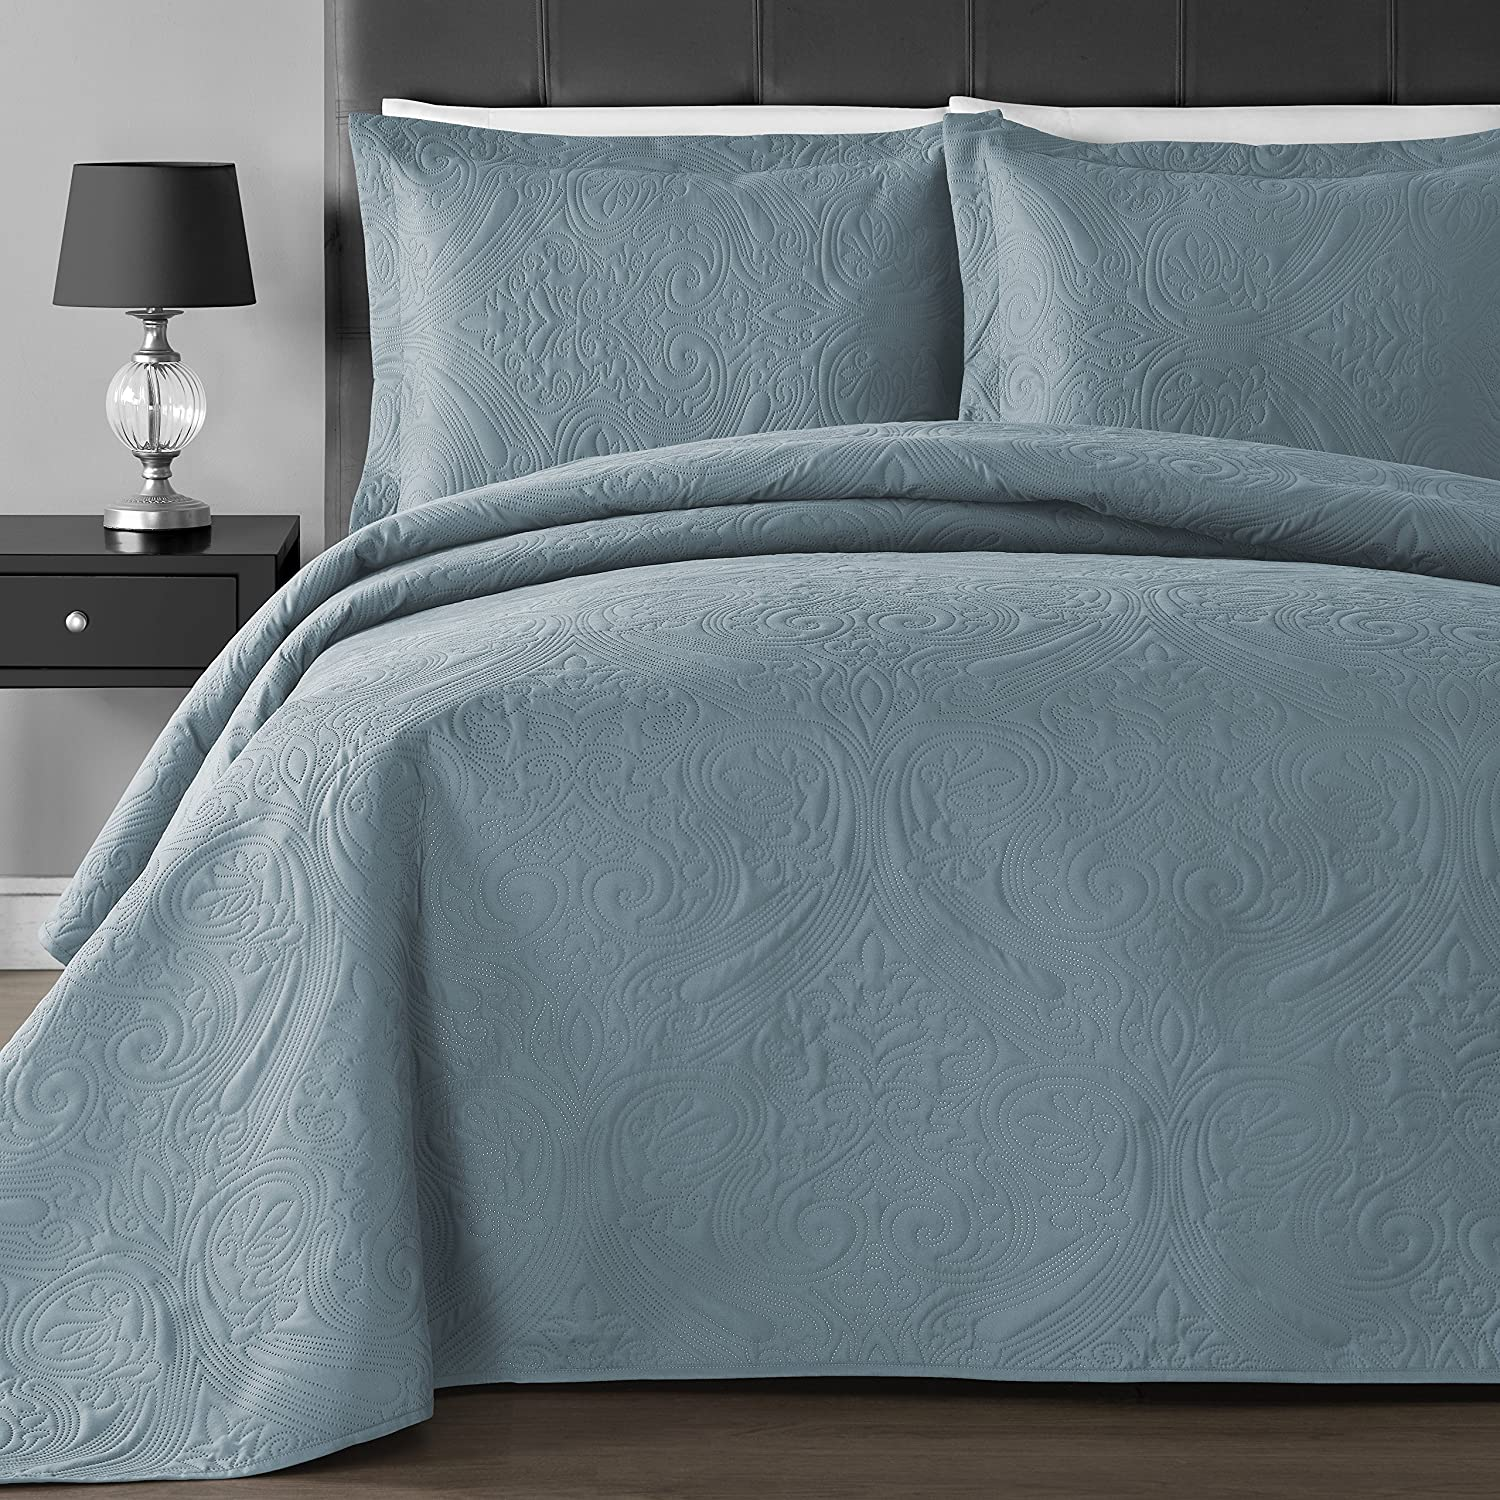 Comfy Bedding Extra Lightweight and Oversized Thermal Pressing Floral 3-piece Coverlet Set (Full/Queen, Spa Blue) B01B179524 Full/Queen|ブルー(Spa Blue) ブルー(Spa Blue) Full/Queen